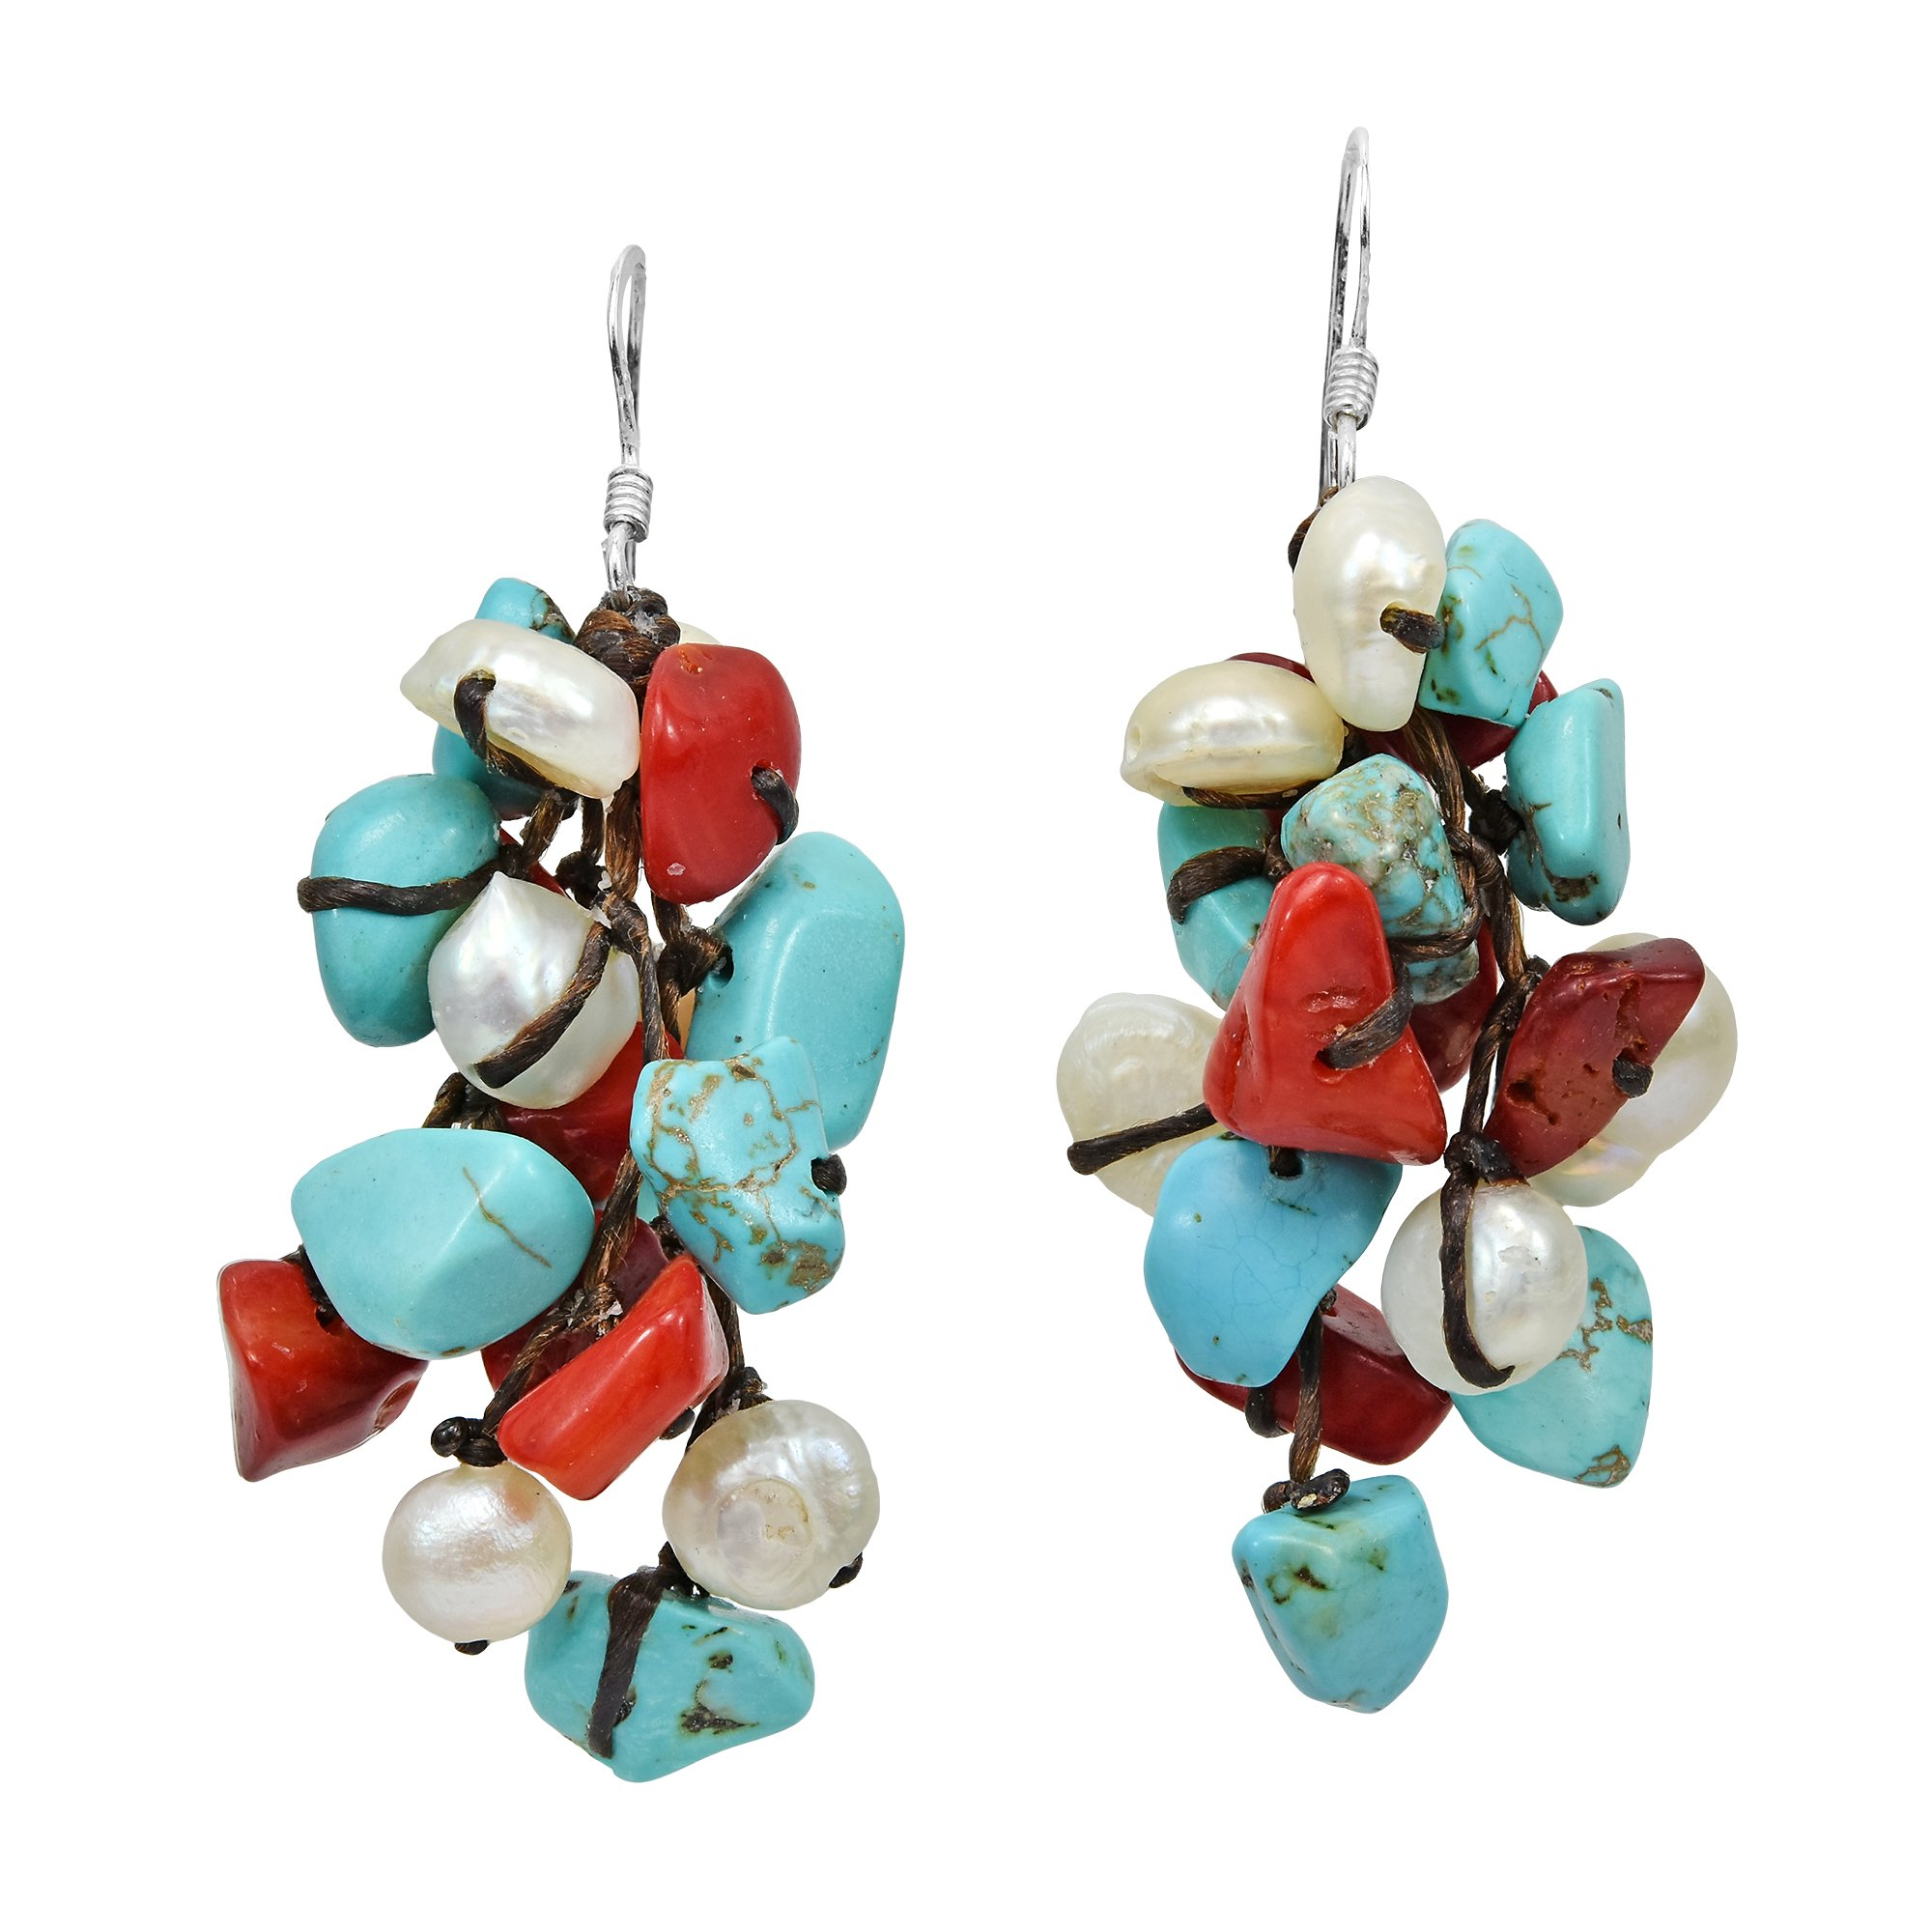 Cluster Simulated Turquoise & Reconstructed Coral & Cultured Freshwater White Pearl .925 Sterling Silver Dangle Earrings by AeraVida (Image #1)